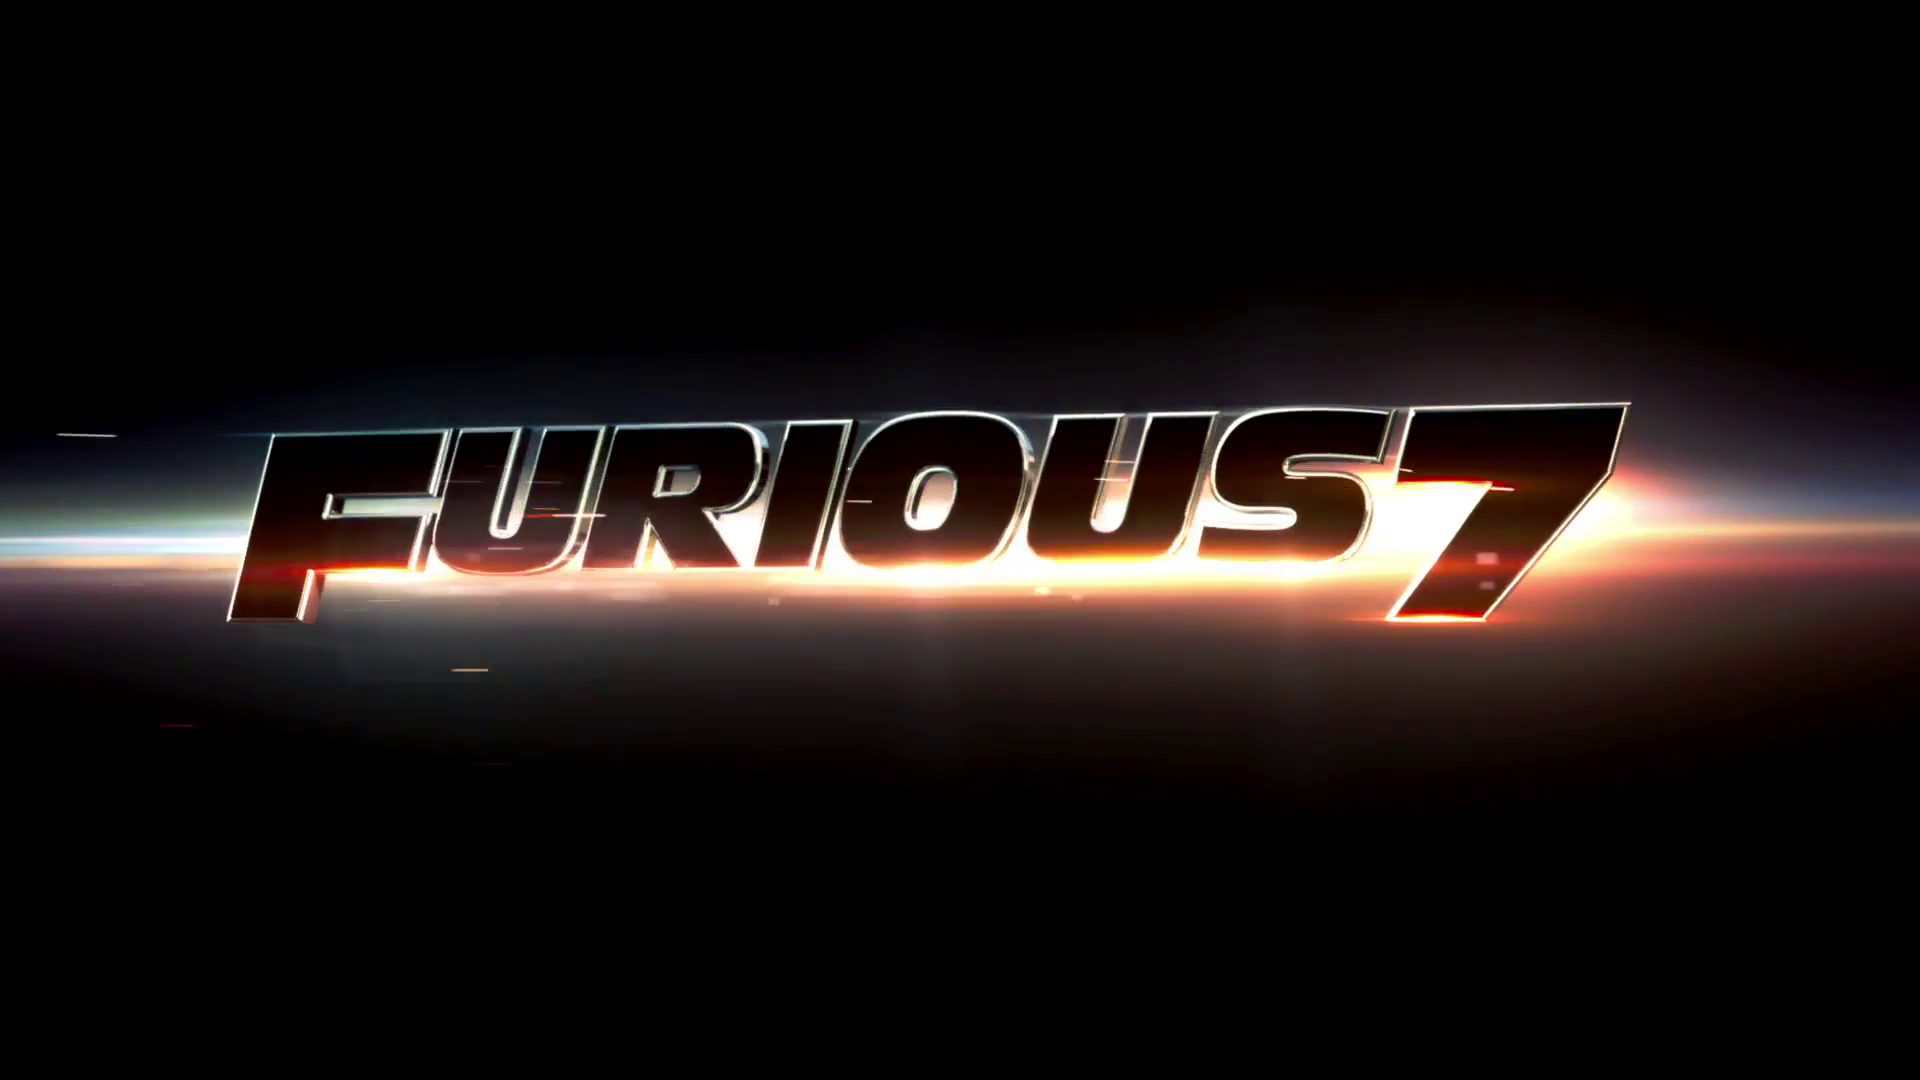 Fast And Furious 7 Wallpaper Free Download Fast Furious